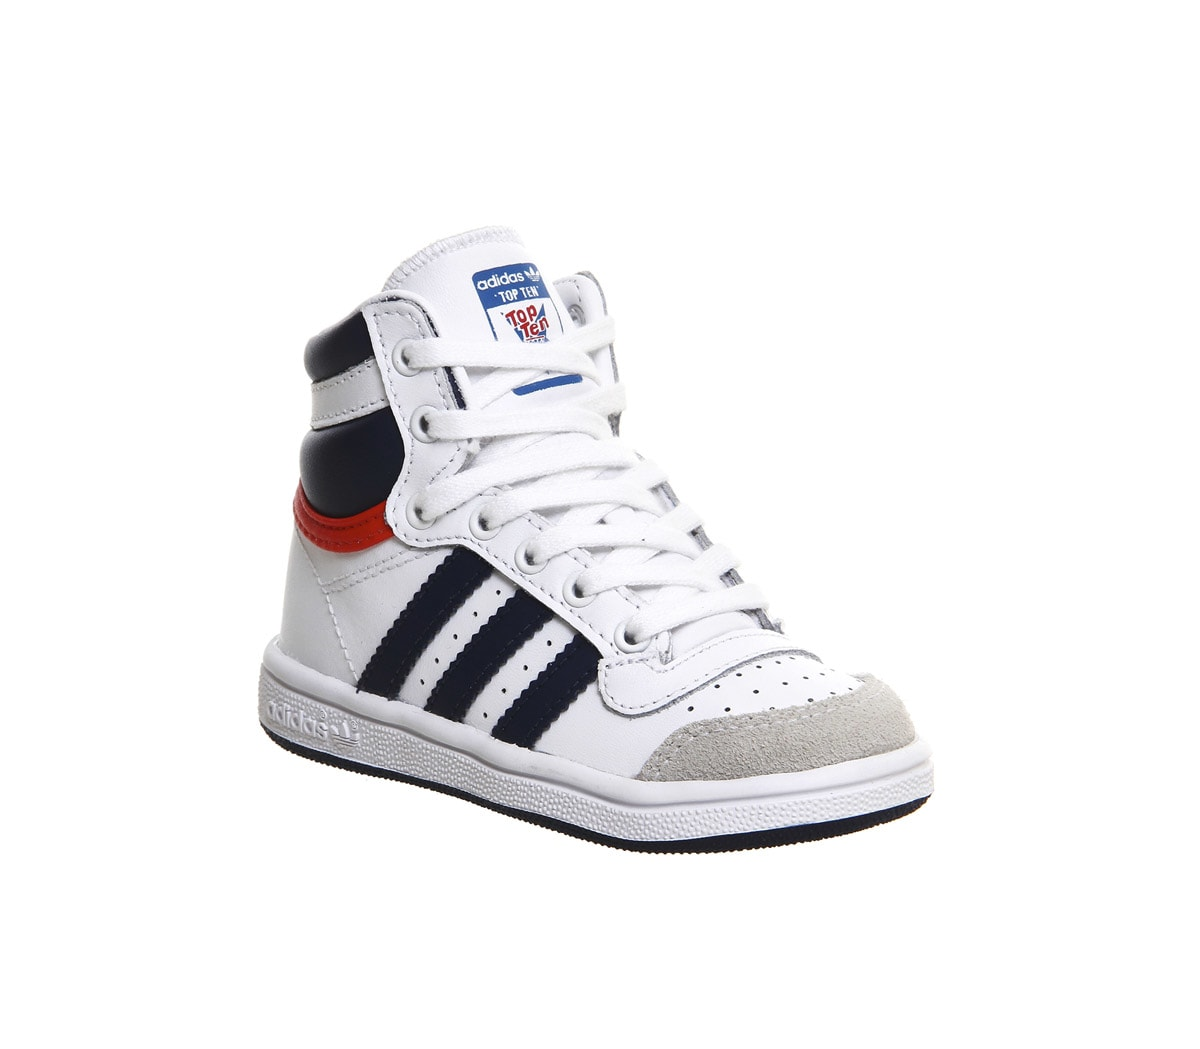 the gallery for cool adidas shoes high tops. Black Bedroom Furniture Sets. Home Design Ideas